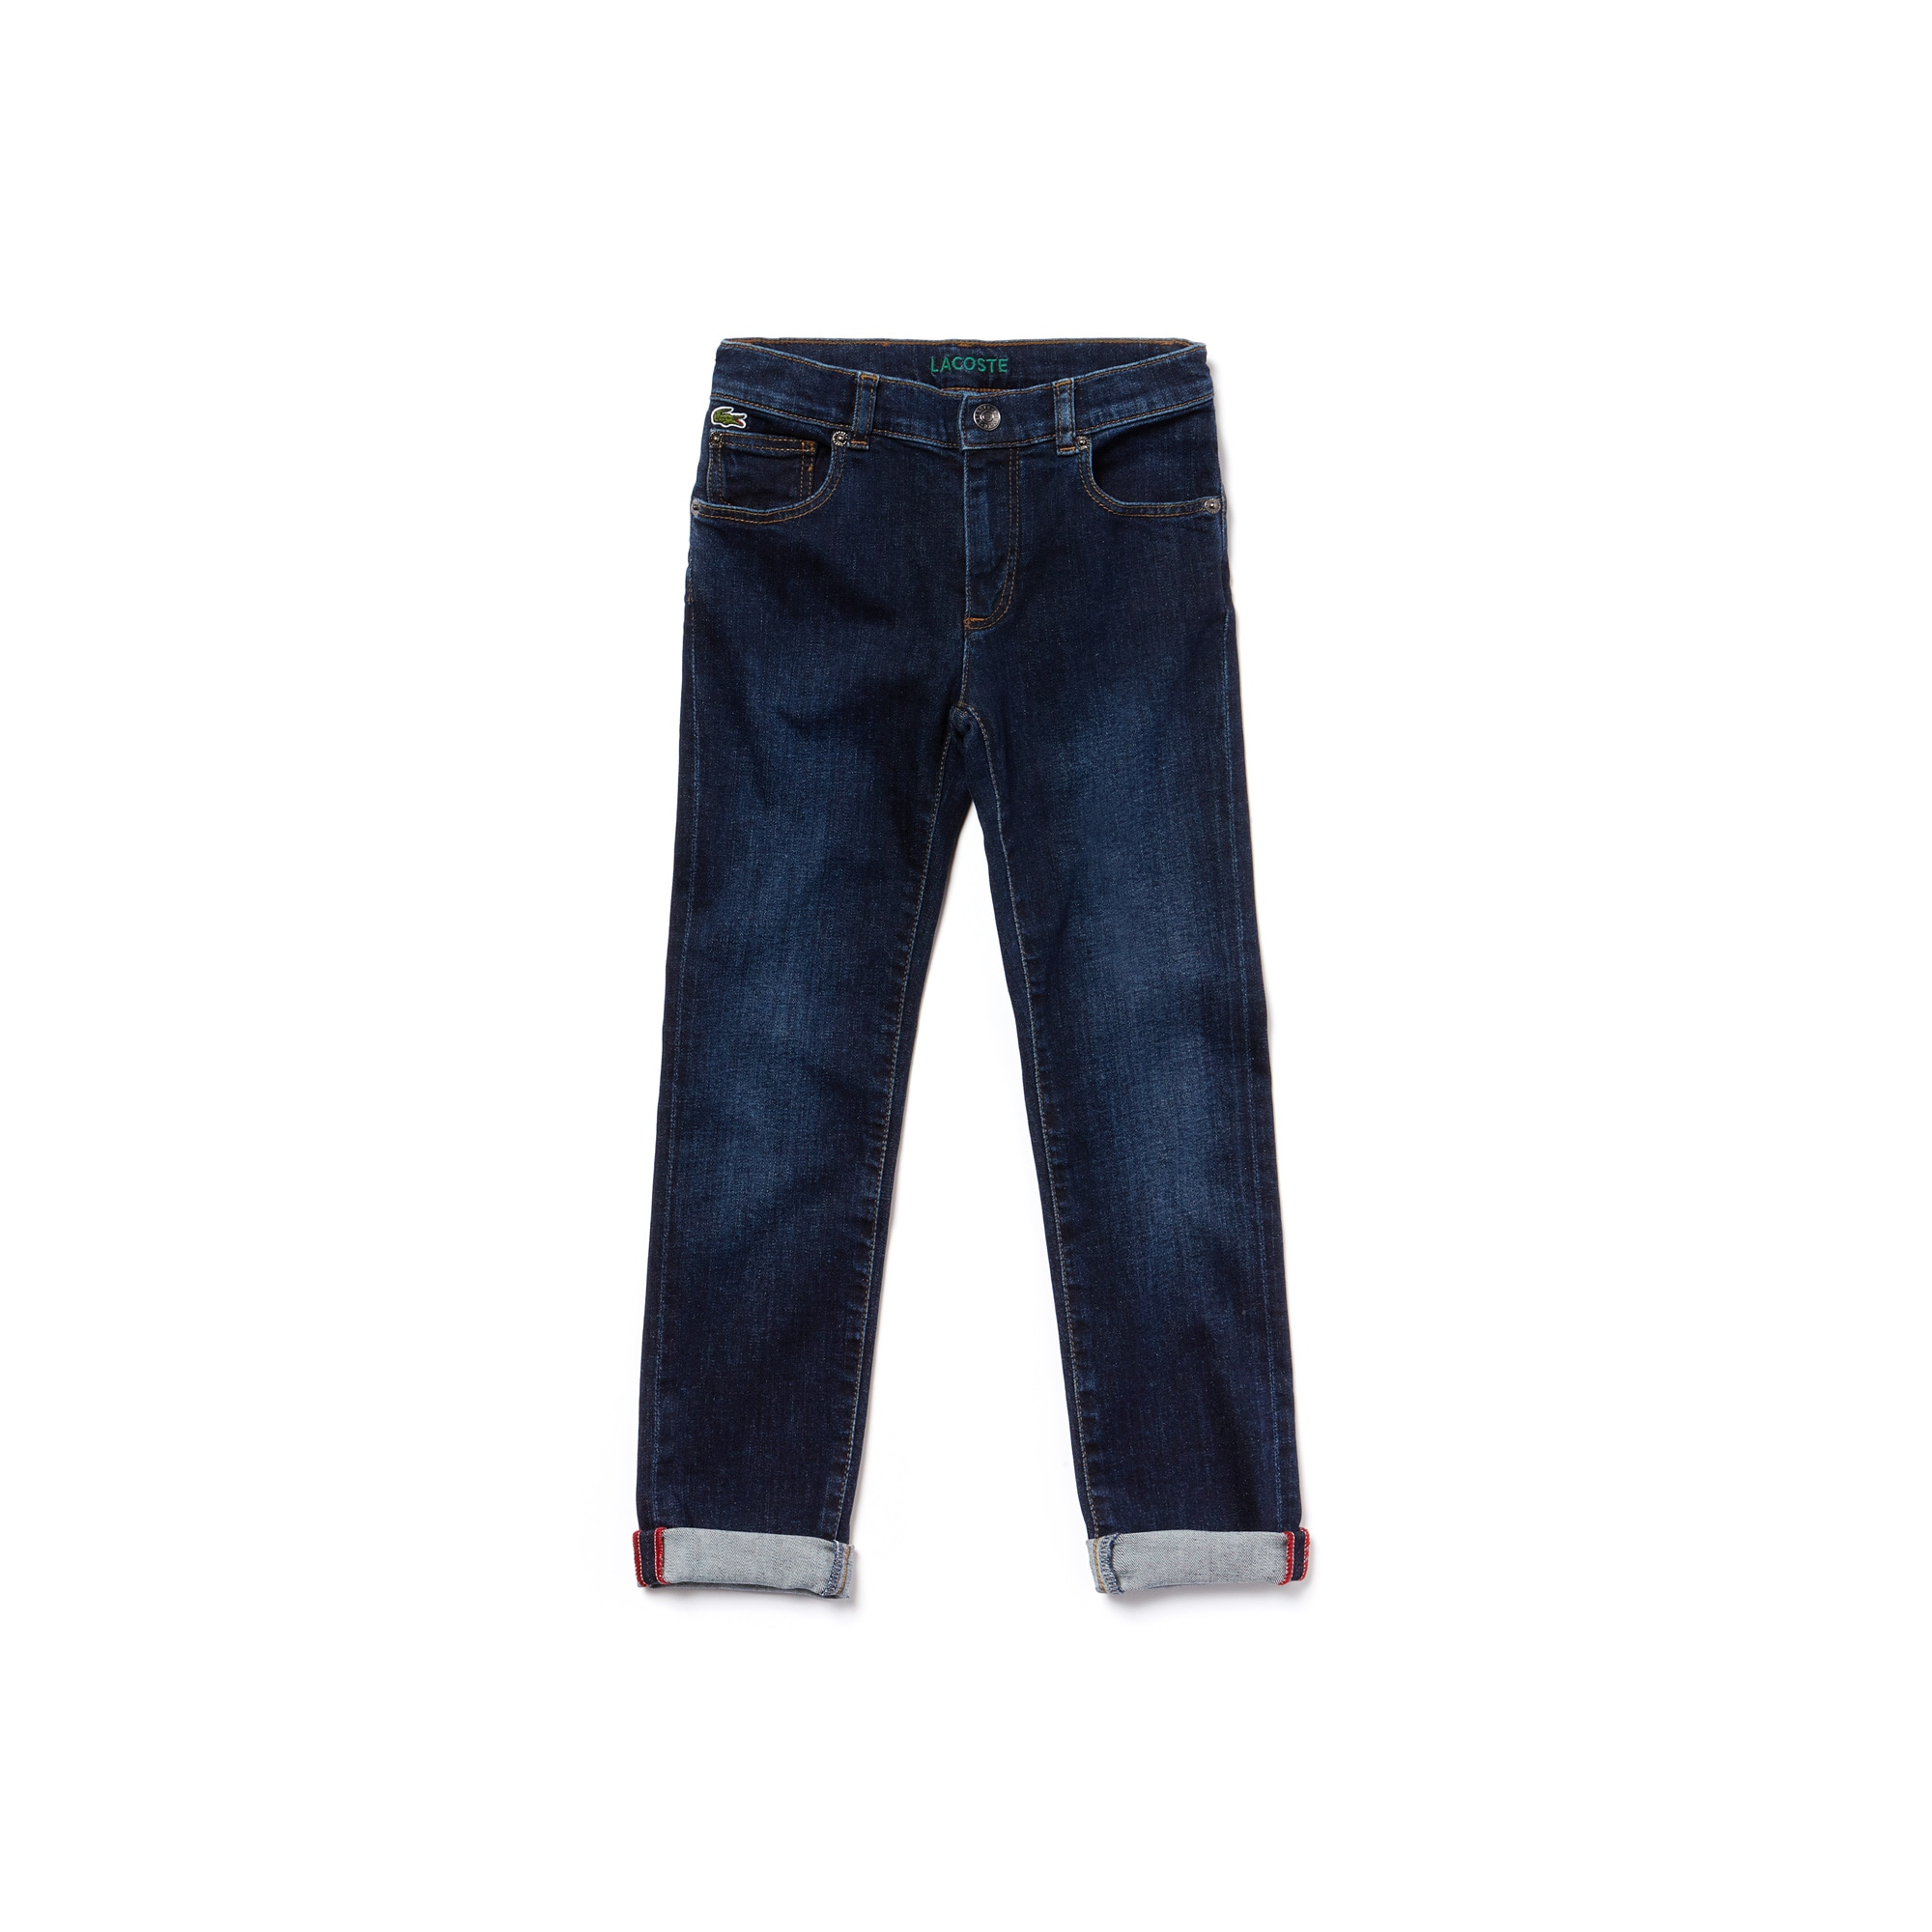 Jeans Enfant en coton denim